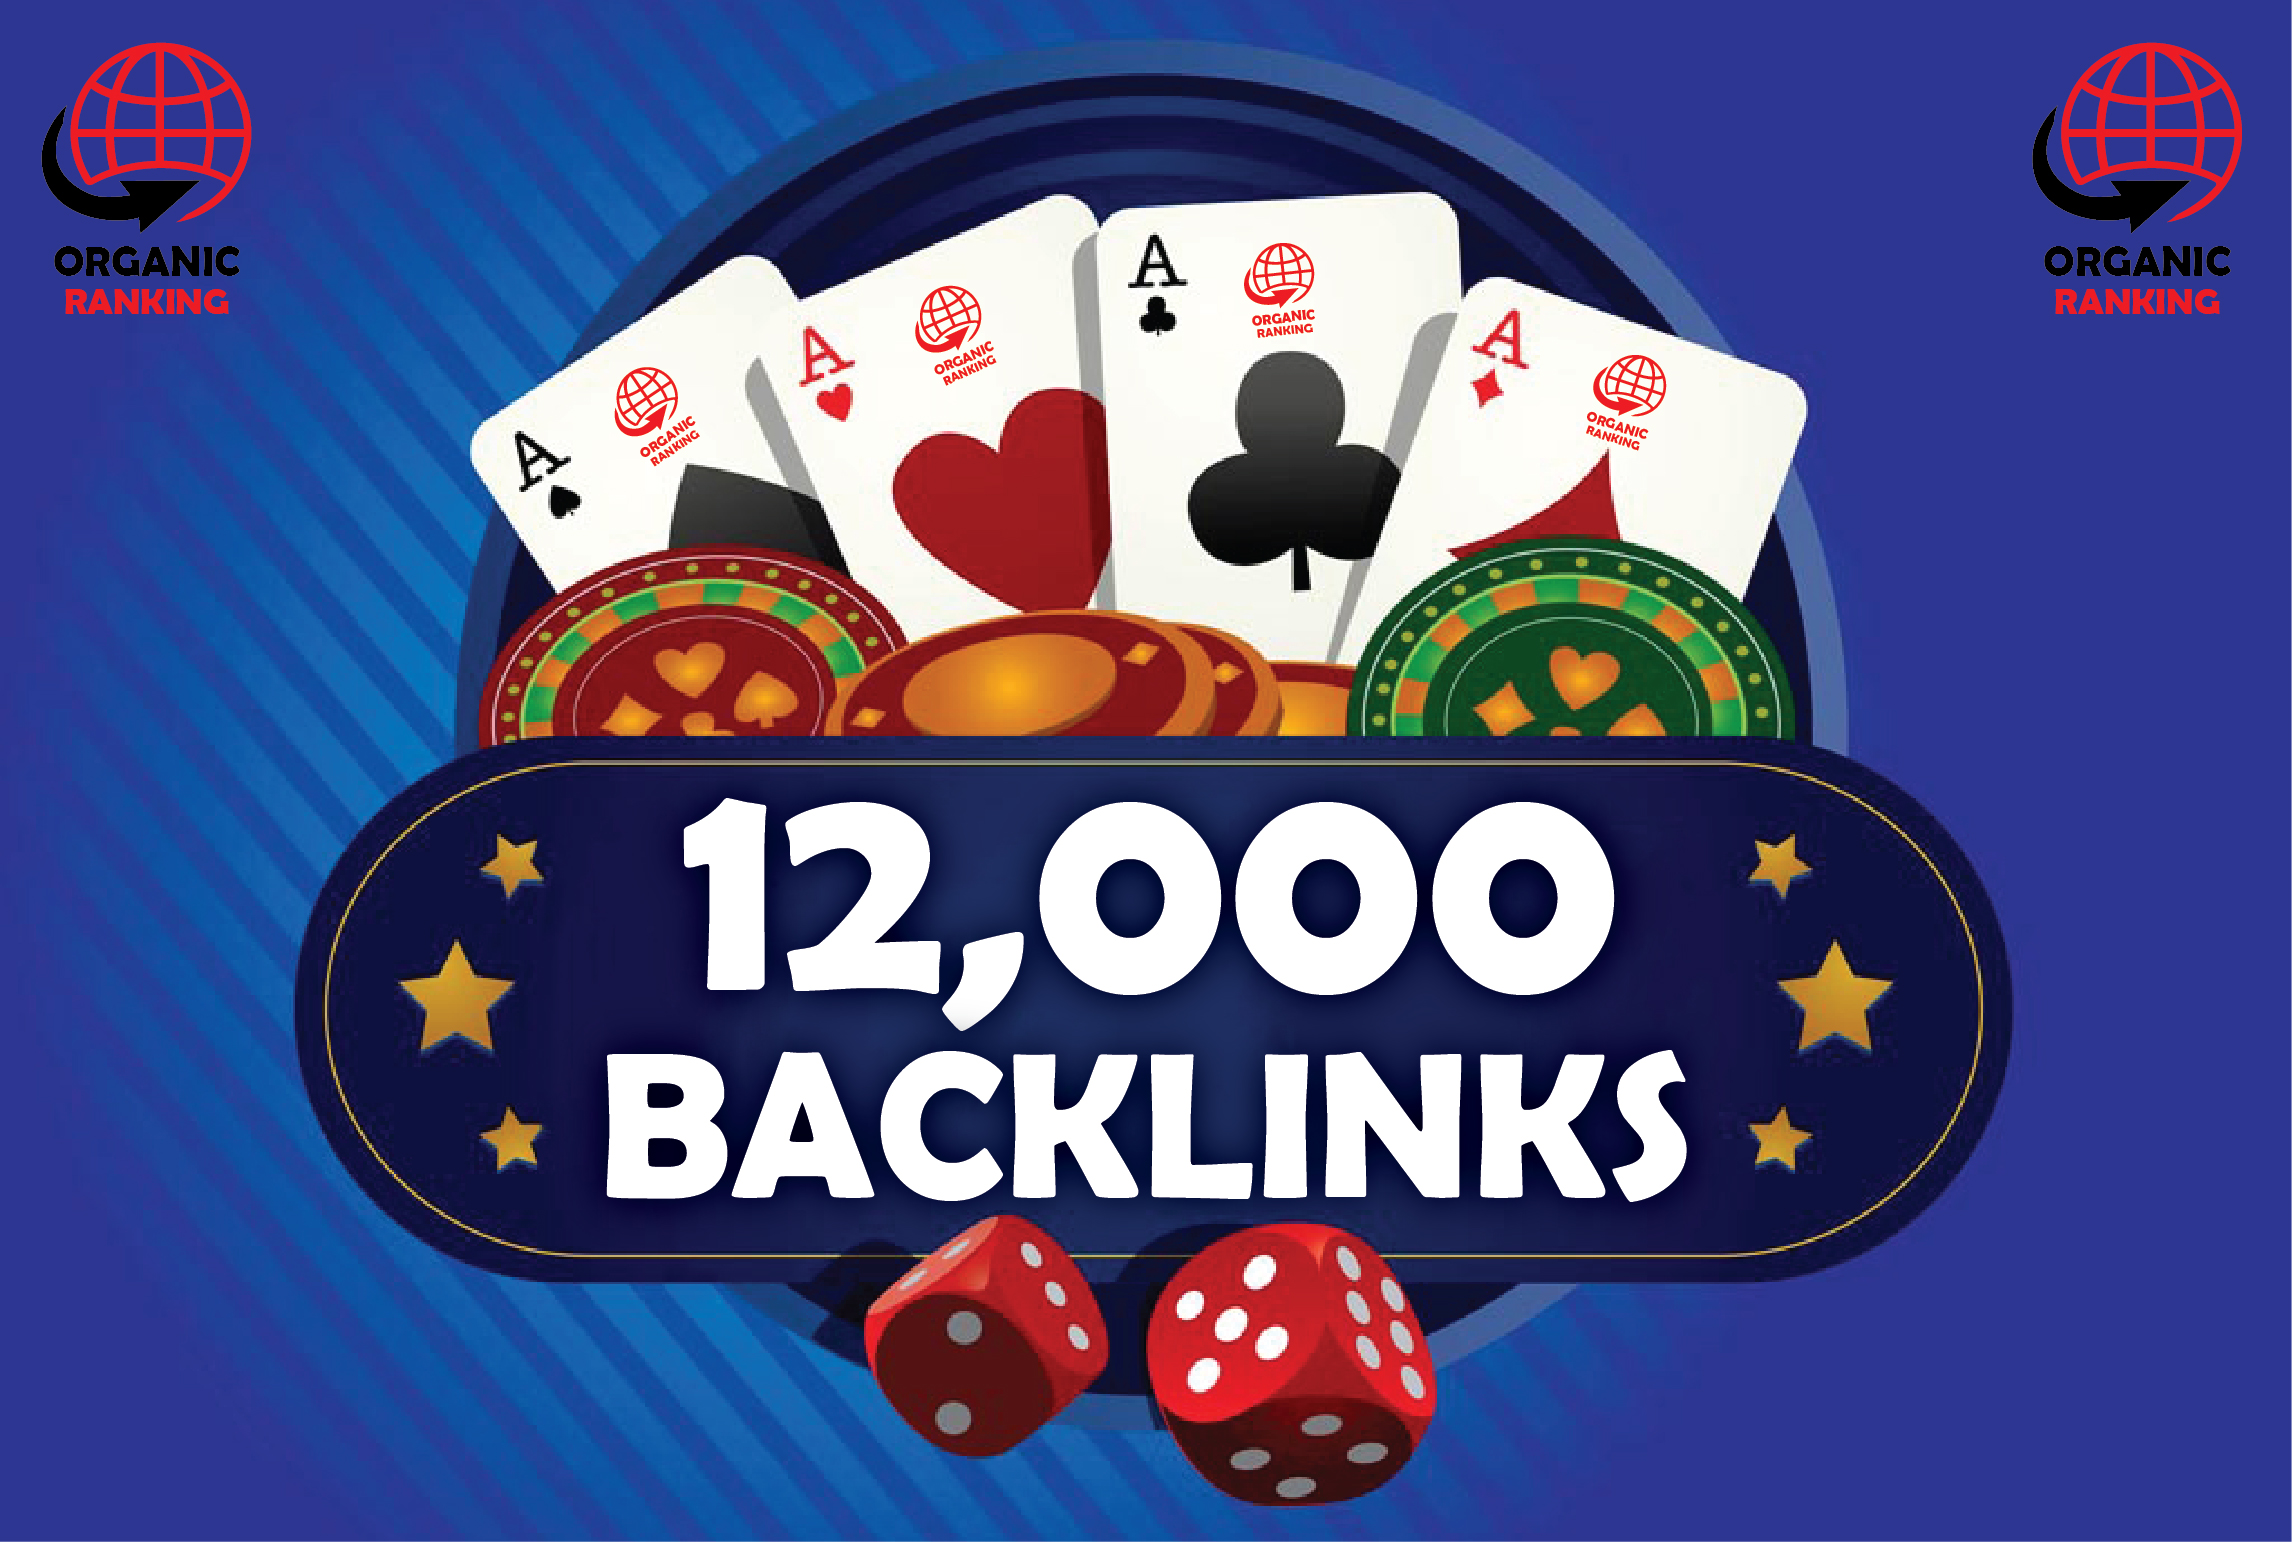 BUILD-12,000 Backlinks Casino, Poker, Gambling, Judi Bola, ufabet, Betting, Sbobet, With HIGH DA-PA Links